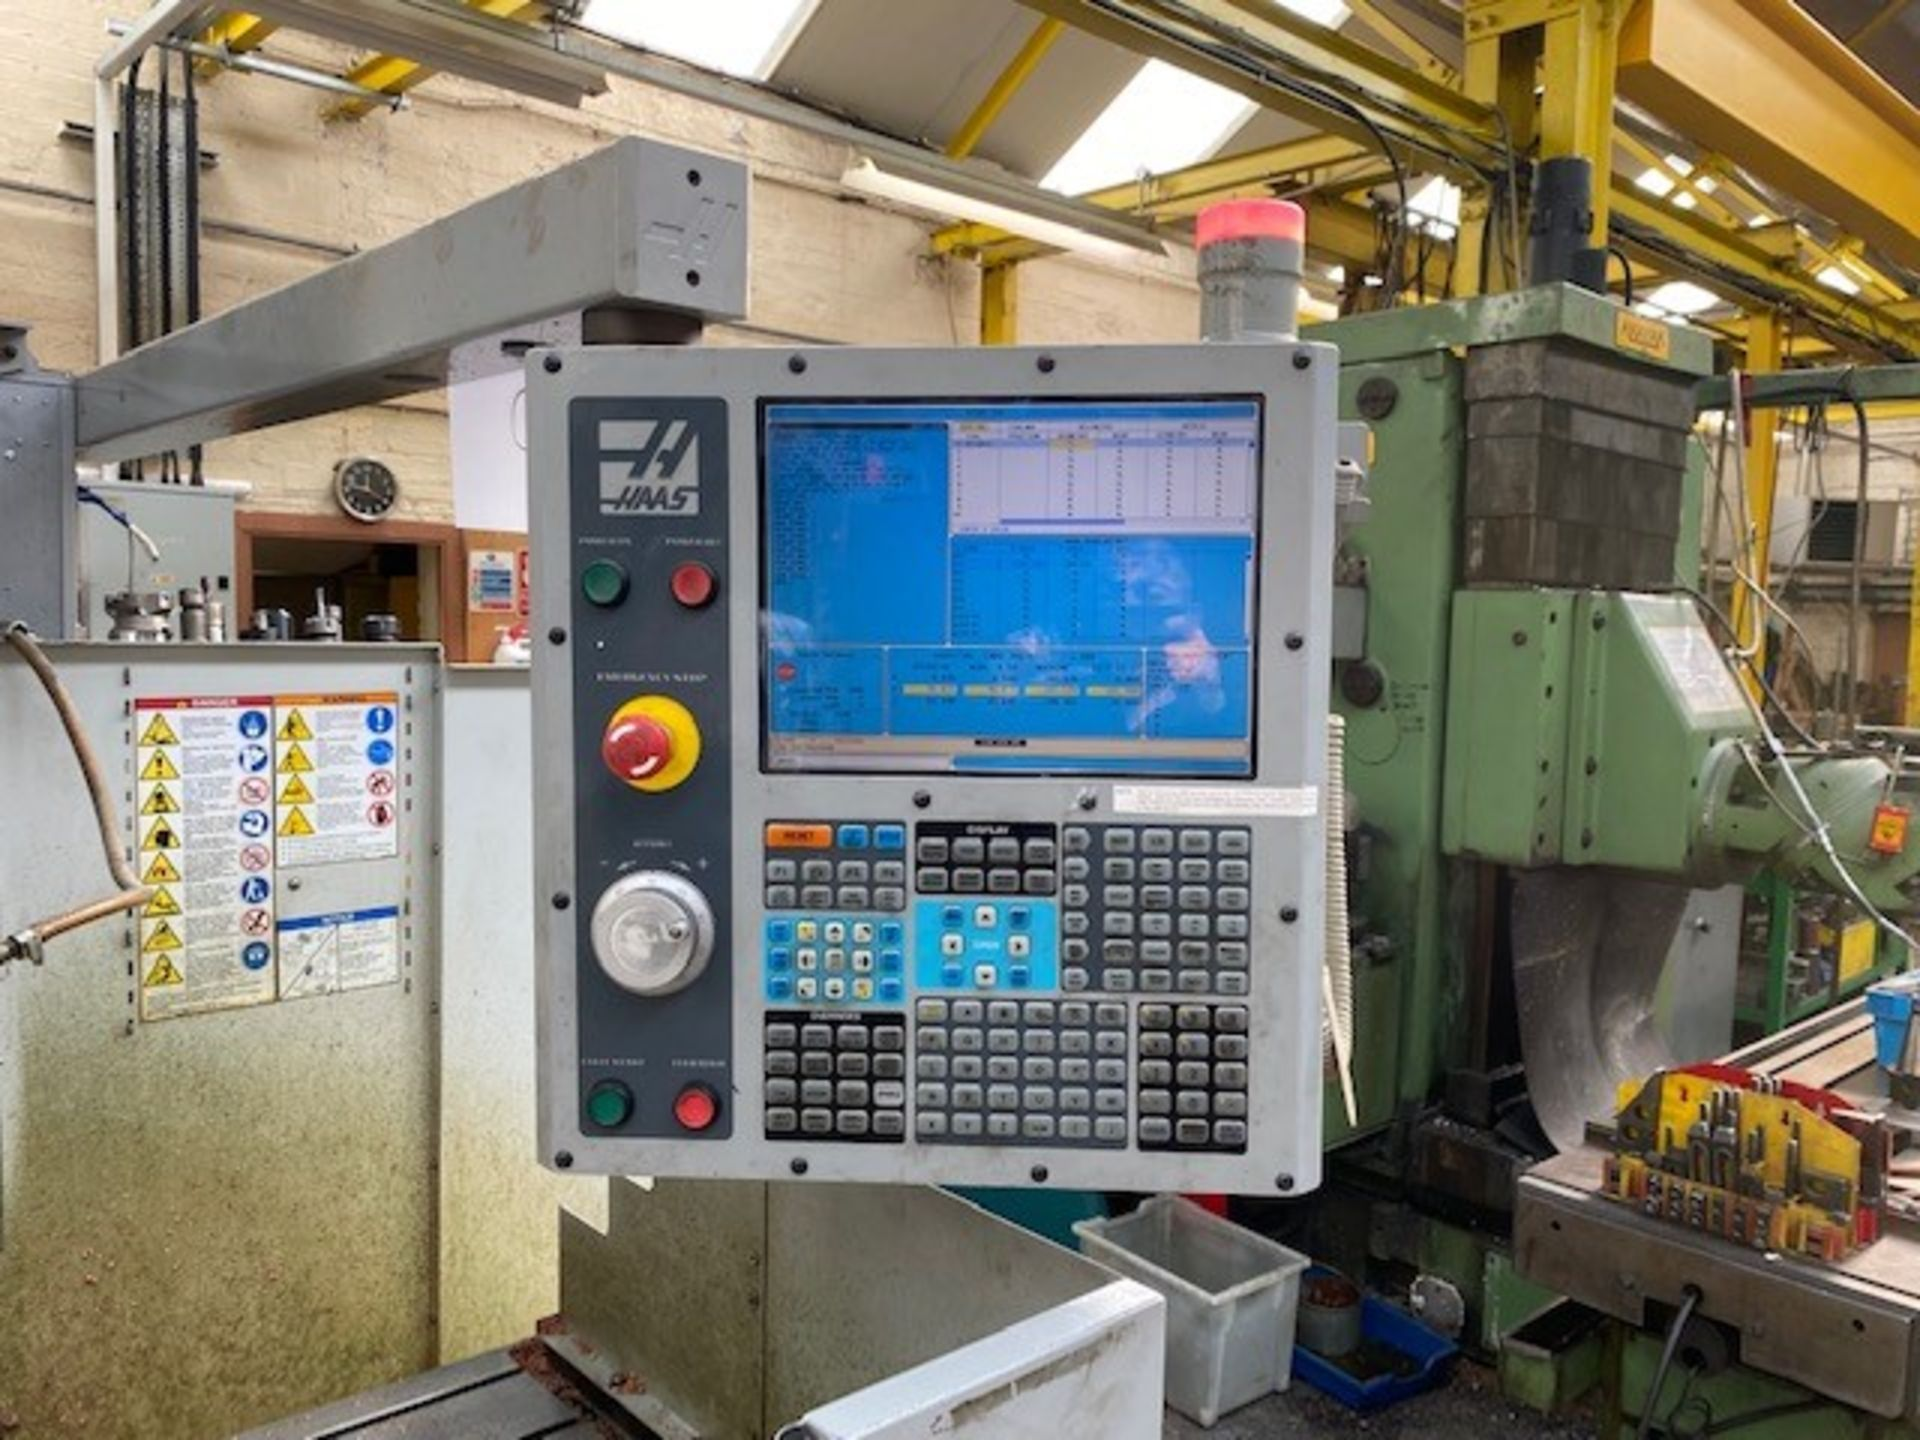 HASS CNC VERTICAL MACHINING CENTRE MODEL: TM-3CE SERIAL No: 1069469 DOM: 07/08 TO INCLUDE MANUALS - Image 2 of 5